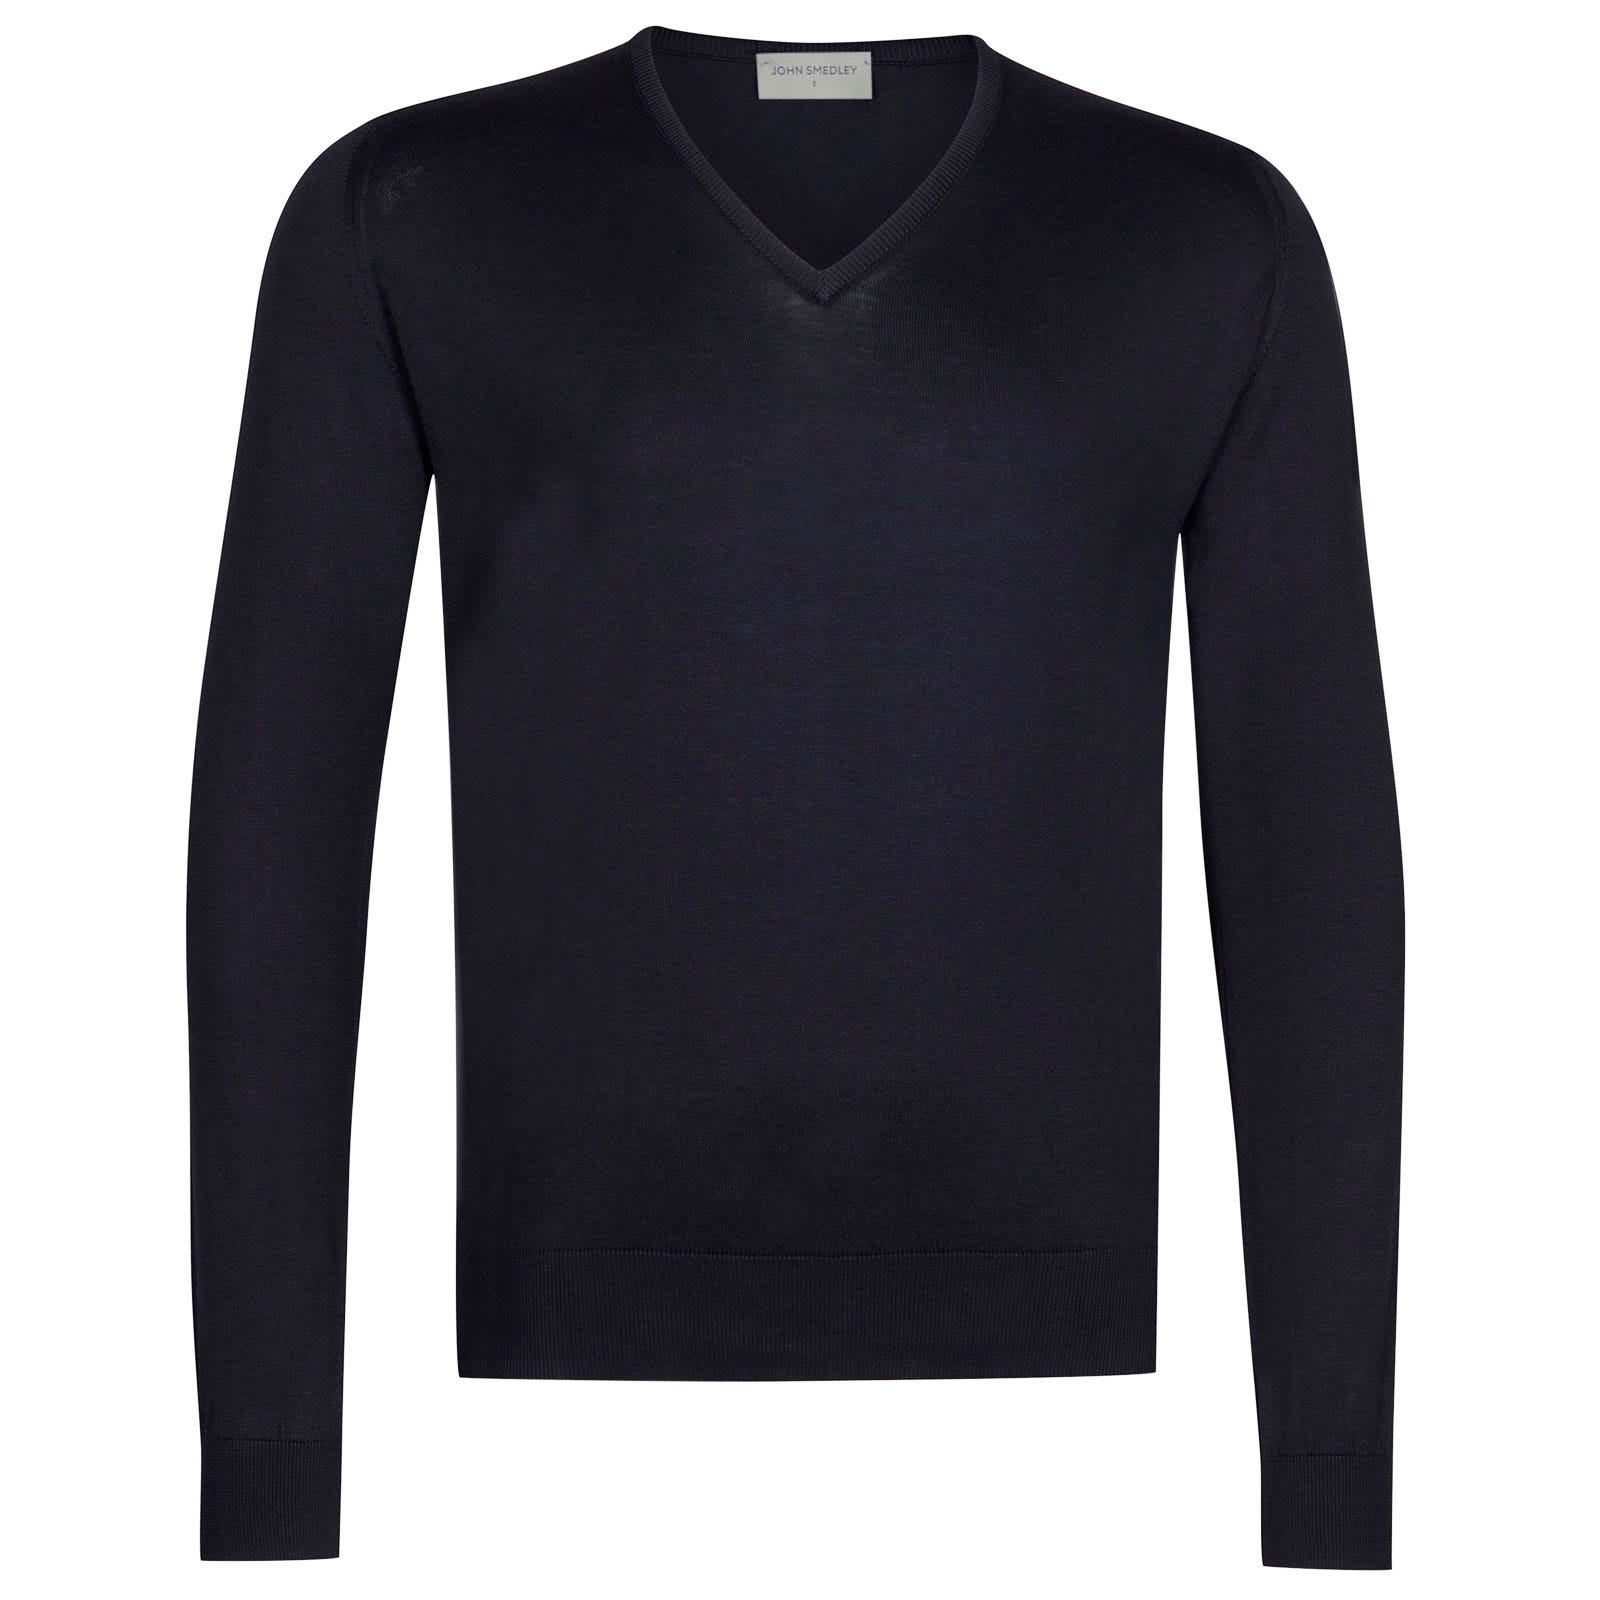 John Smedley Woburn Sea Island Cotton Pullover in Navy-XXL